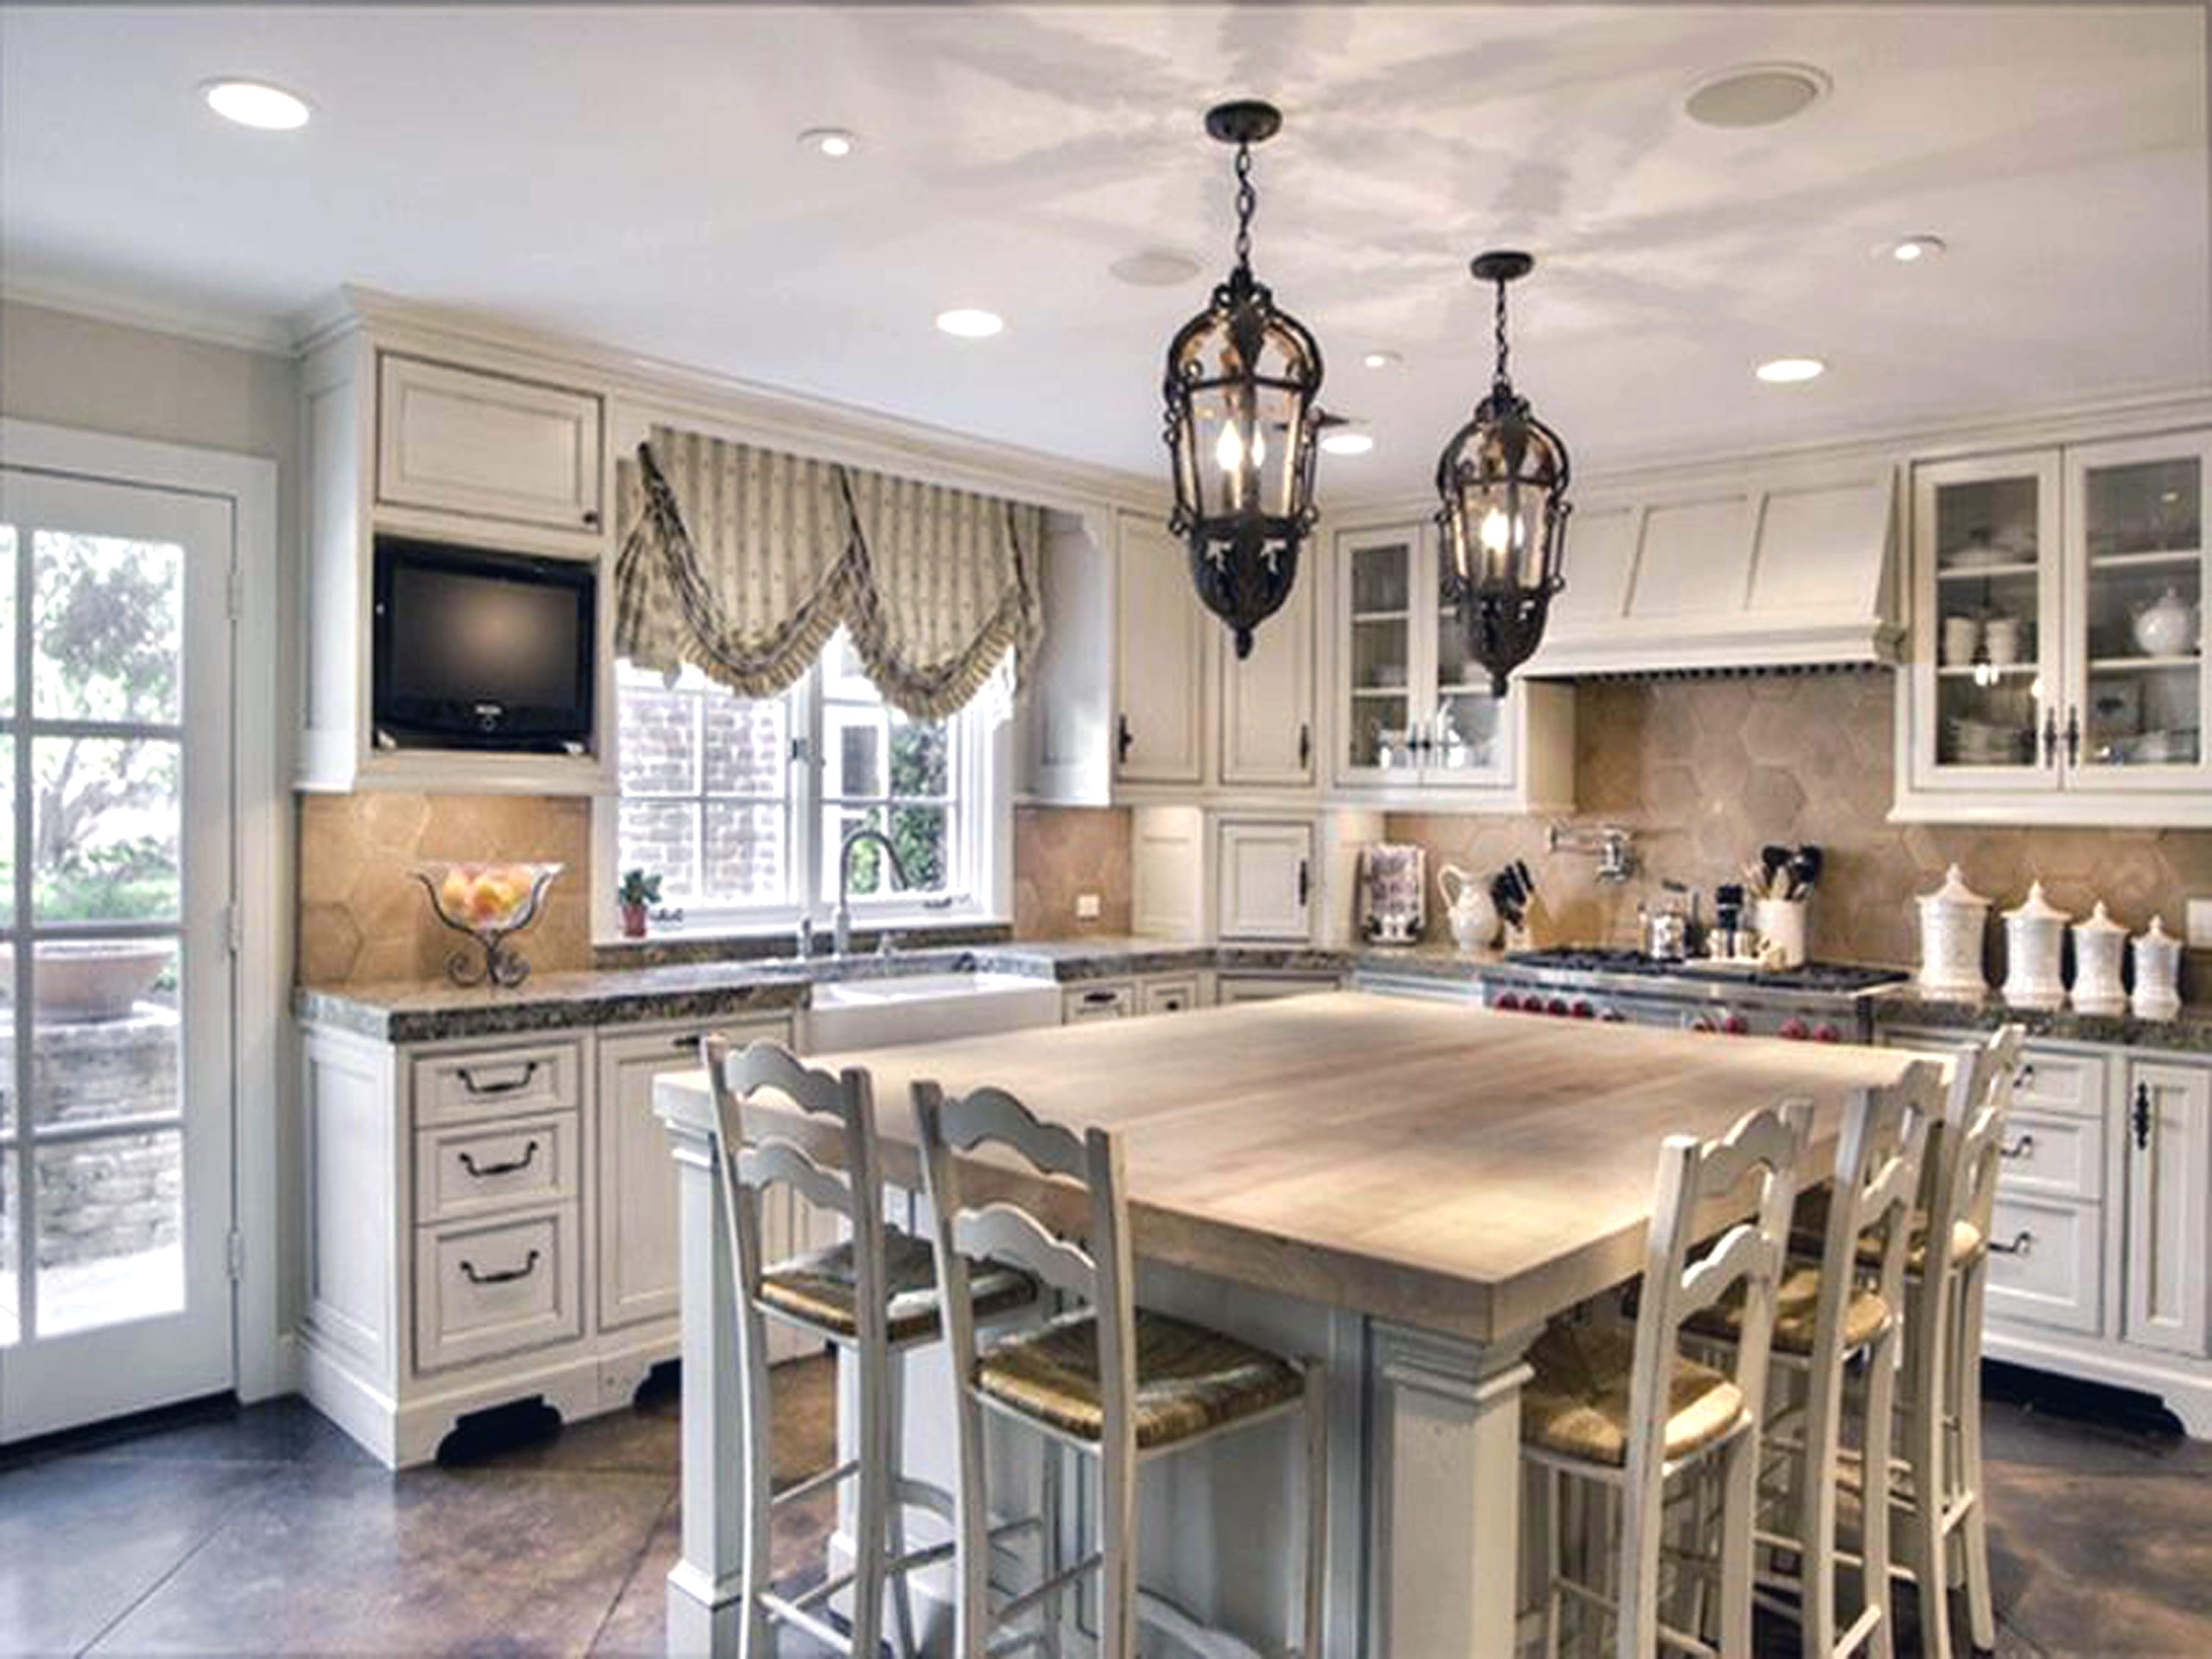 Current Chandeliers Design : Amazing Furniture Antique French Country Mini Pertaining To French Country Chandeliers For Kitchen (View 6 of 20)